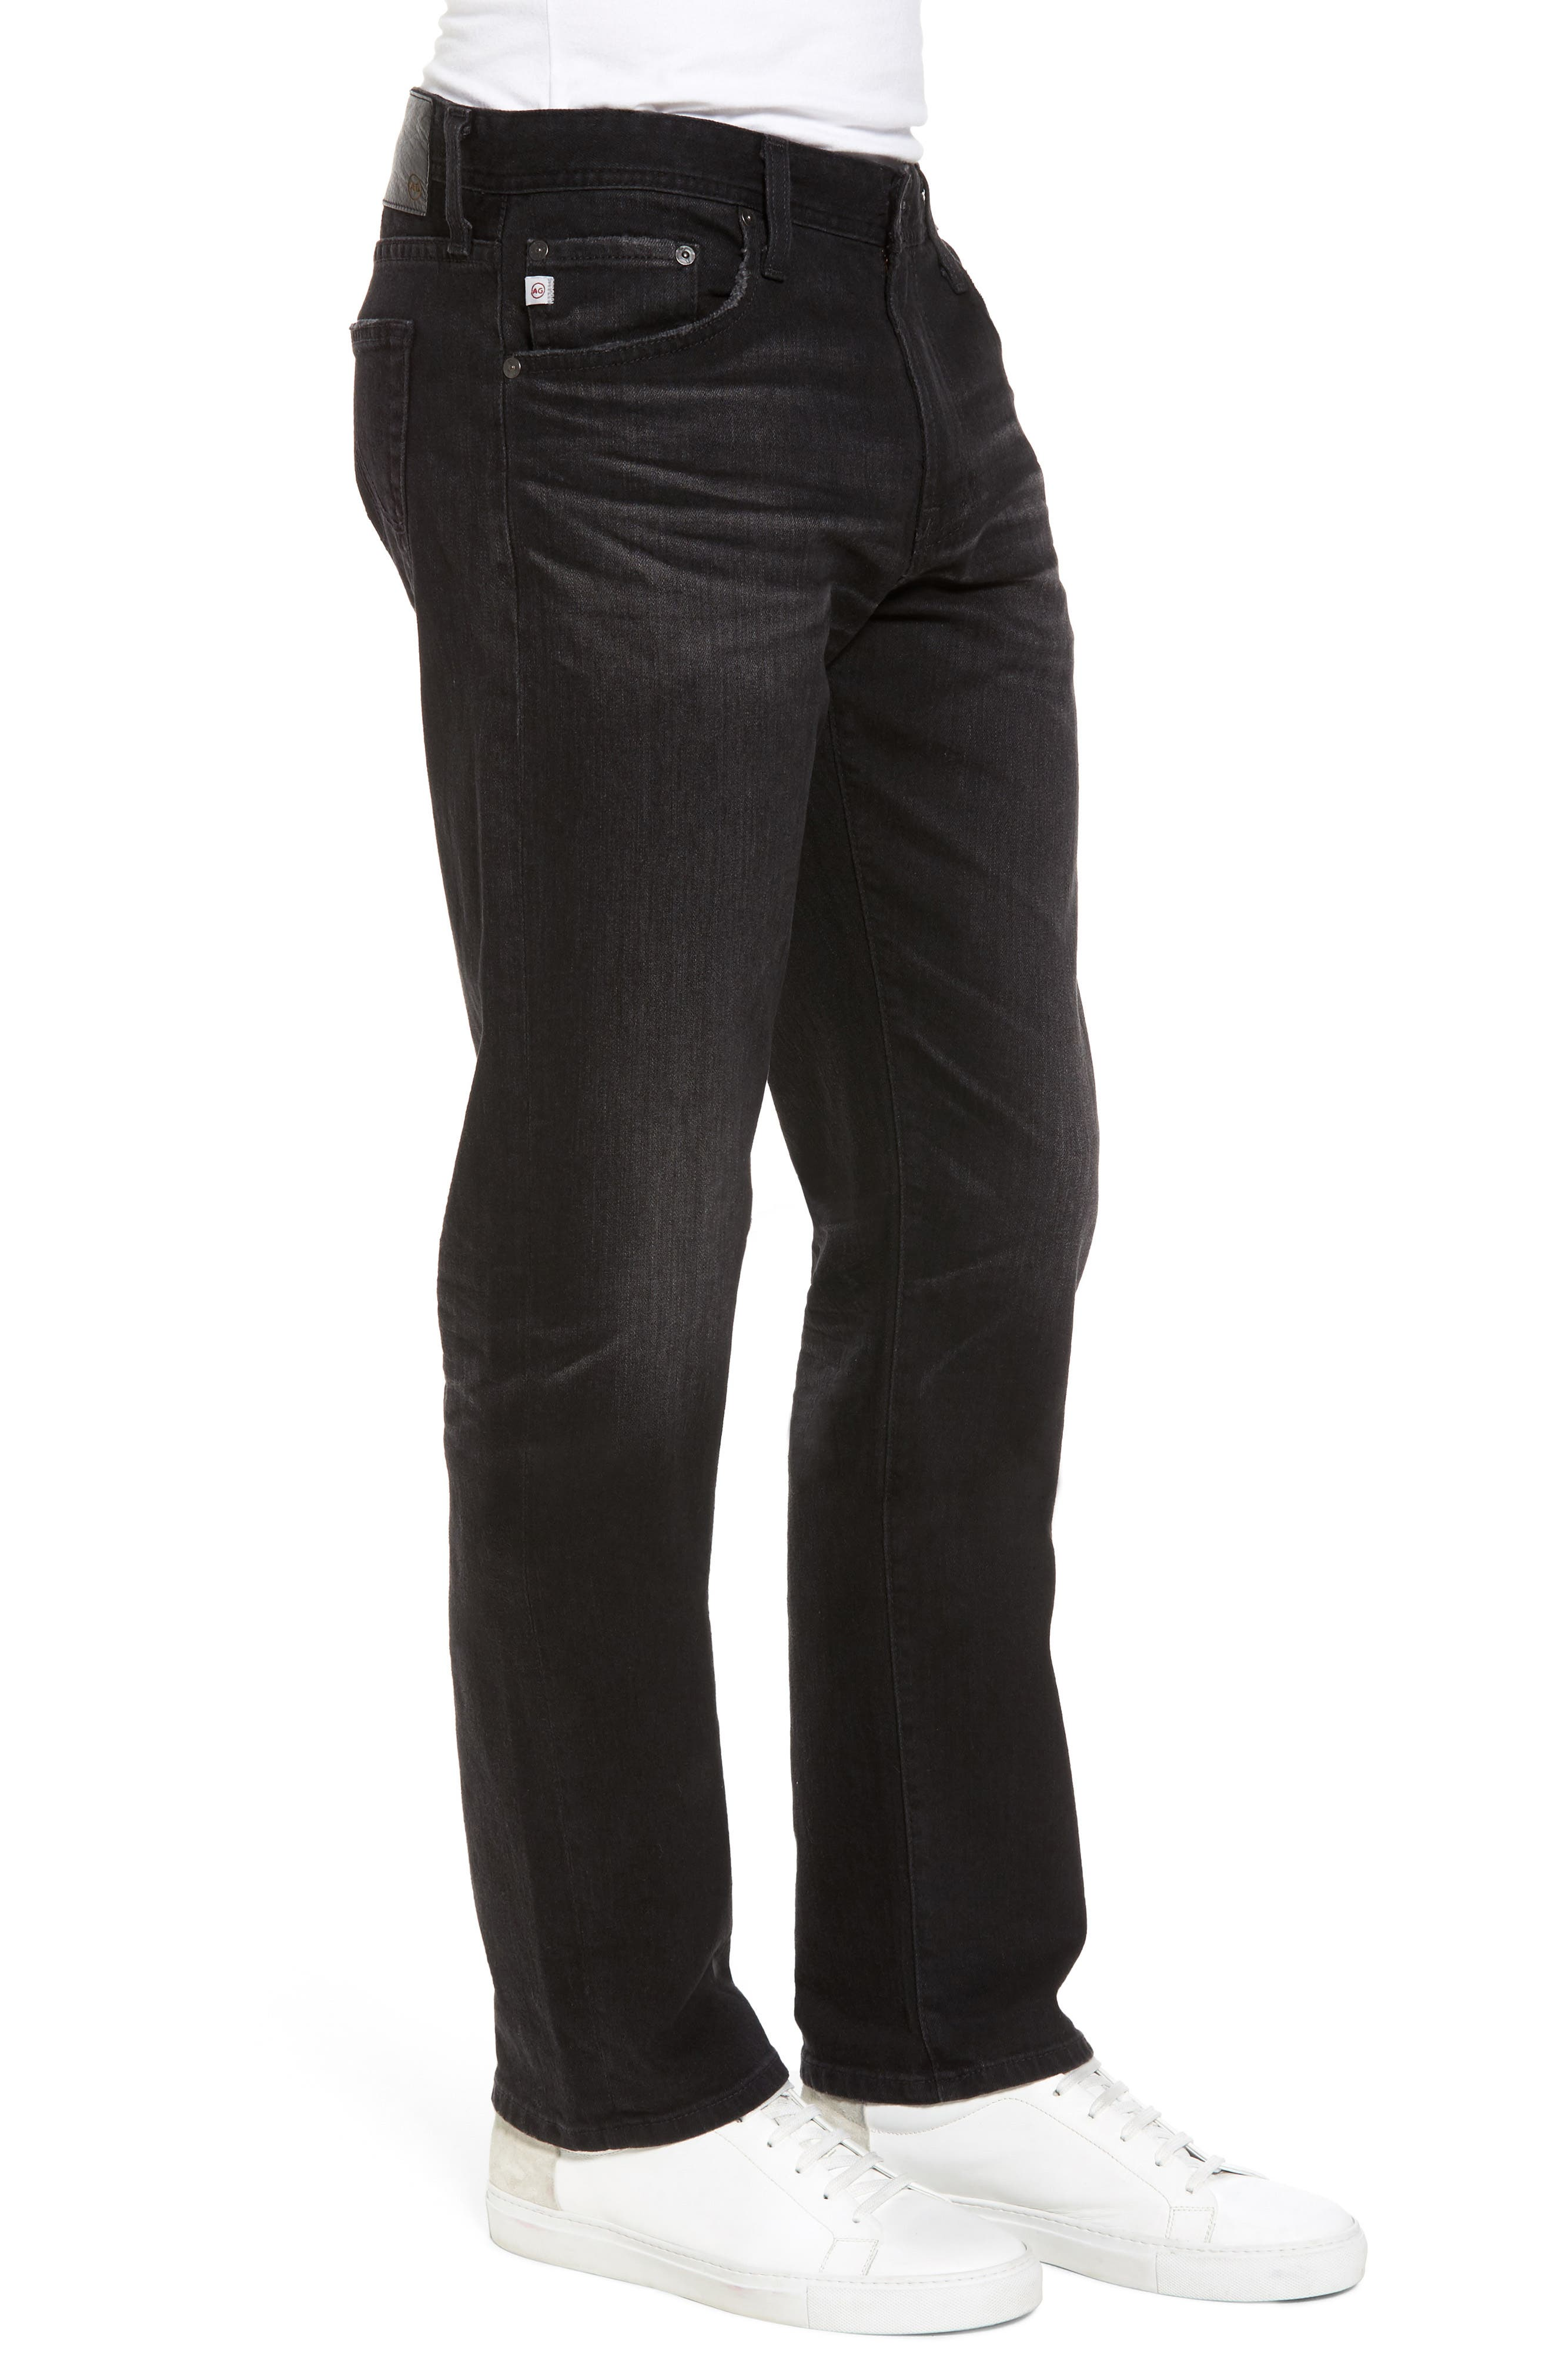 Graduate Slim Straight Fit Jeans,                             Alternate thumbnail 3, color,                             4 Years Down